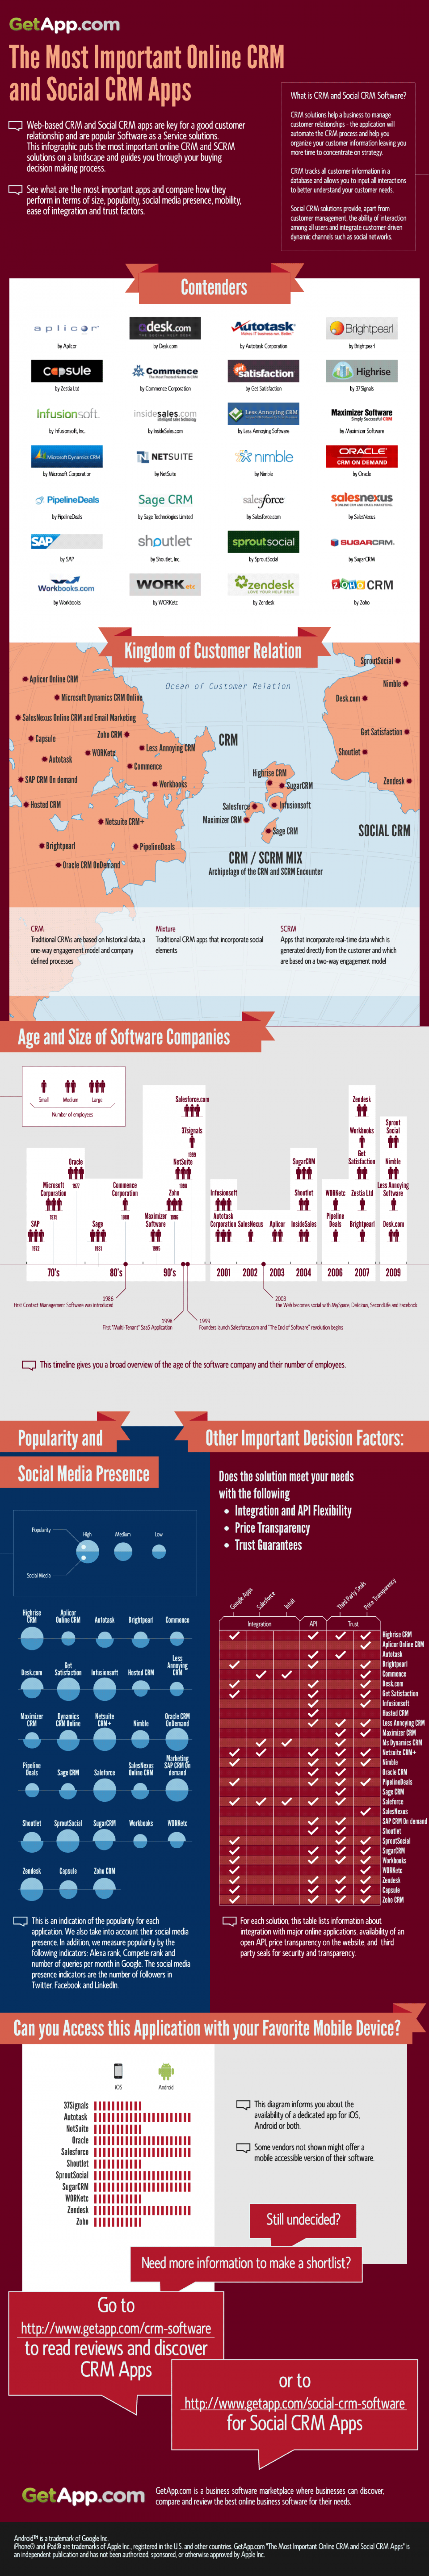 Top Online CRM and Social CRM Apps  Infographic